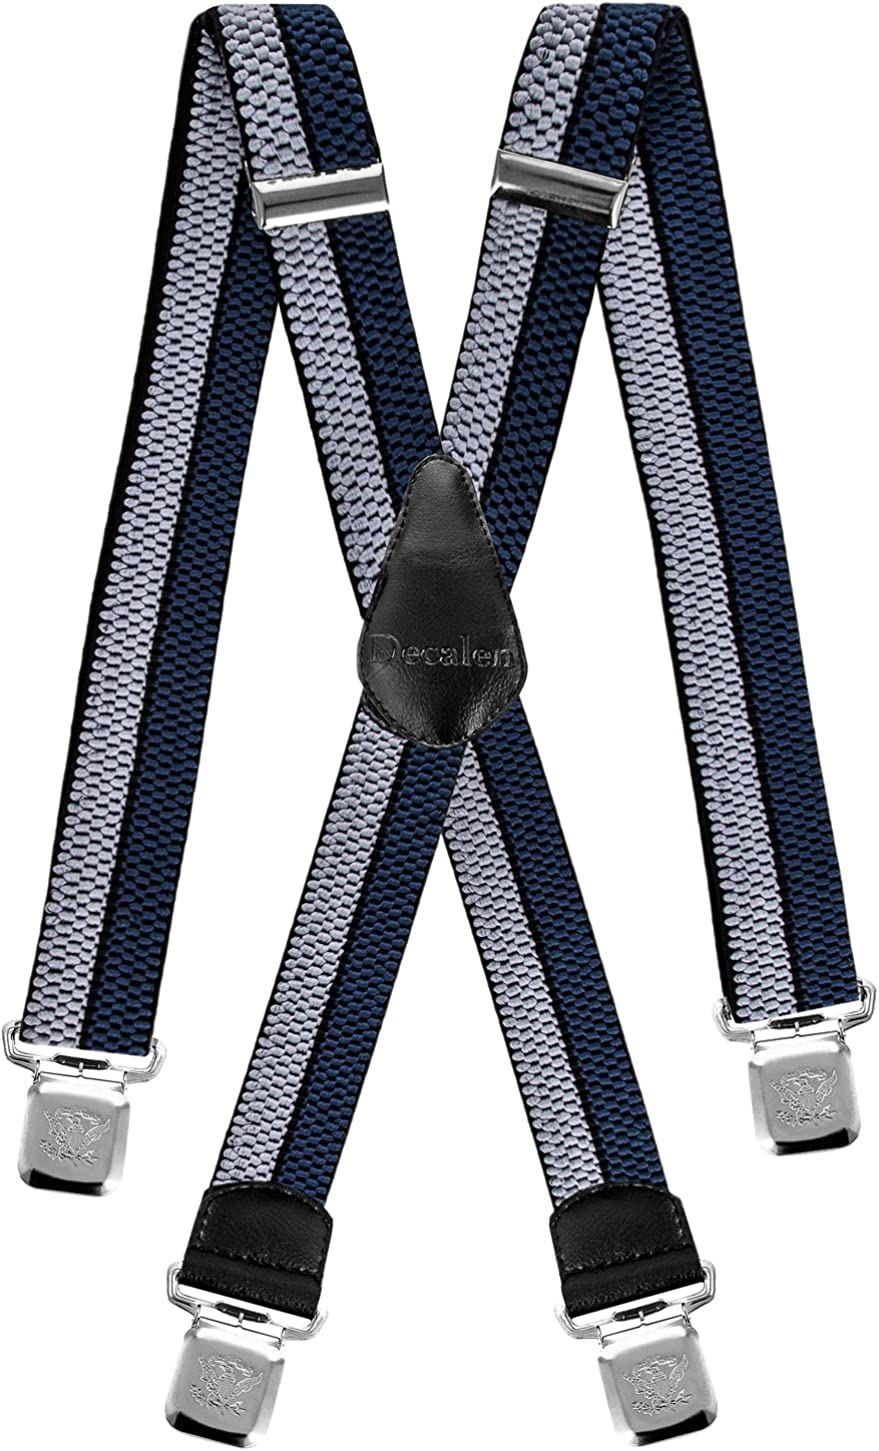 Mens Suspenders Very Strong Clips Heavy Duty Braces Big and Tall X Style